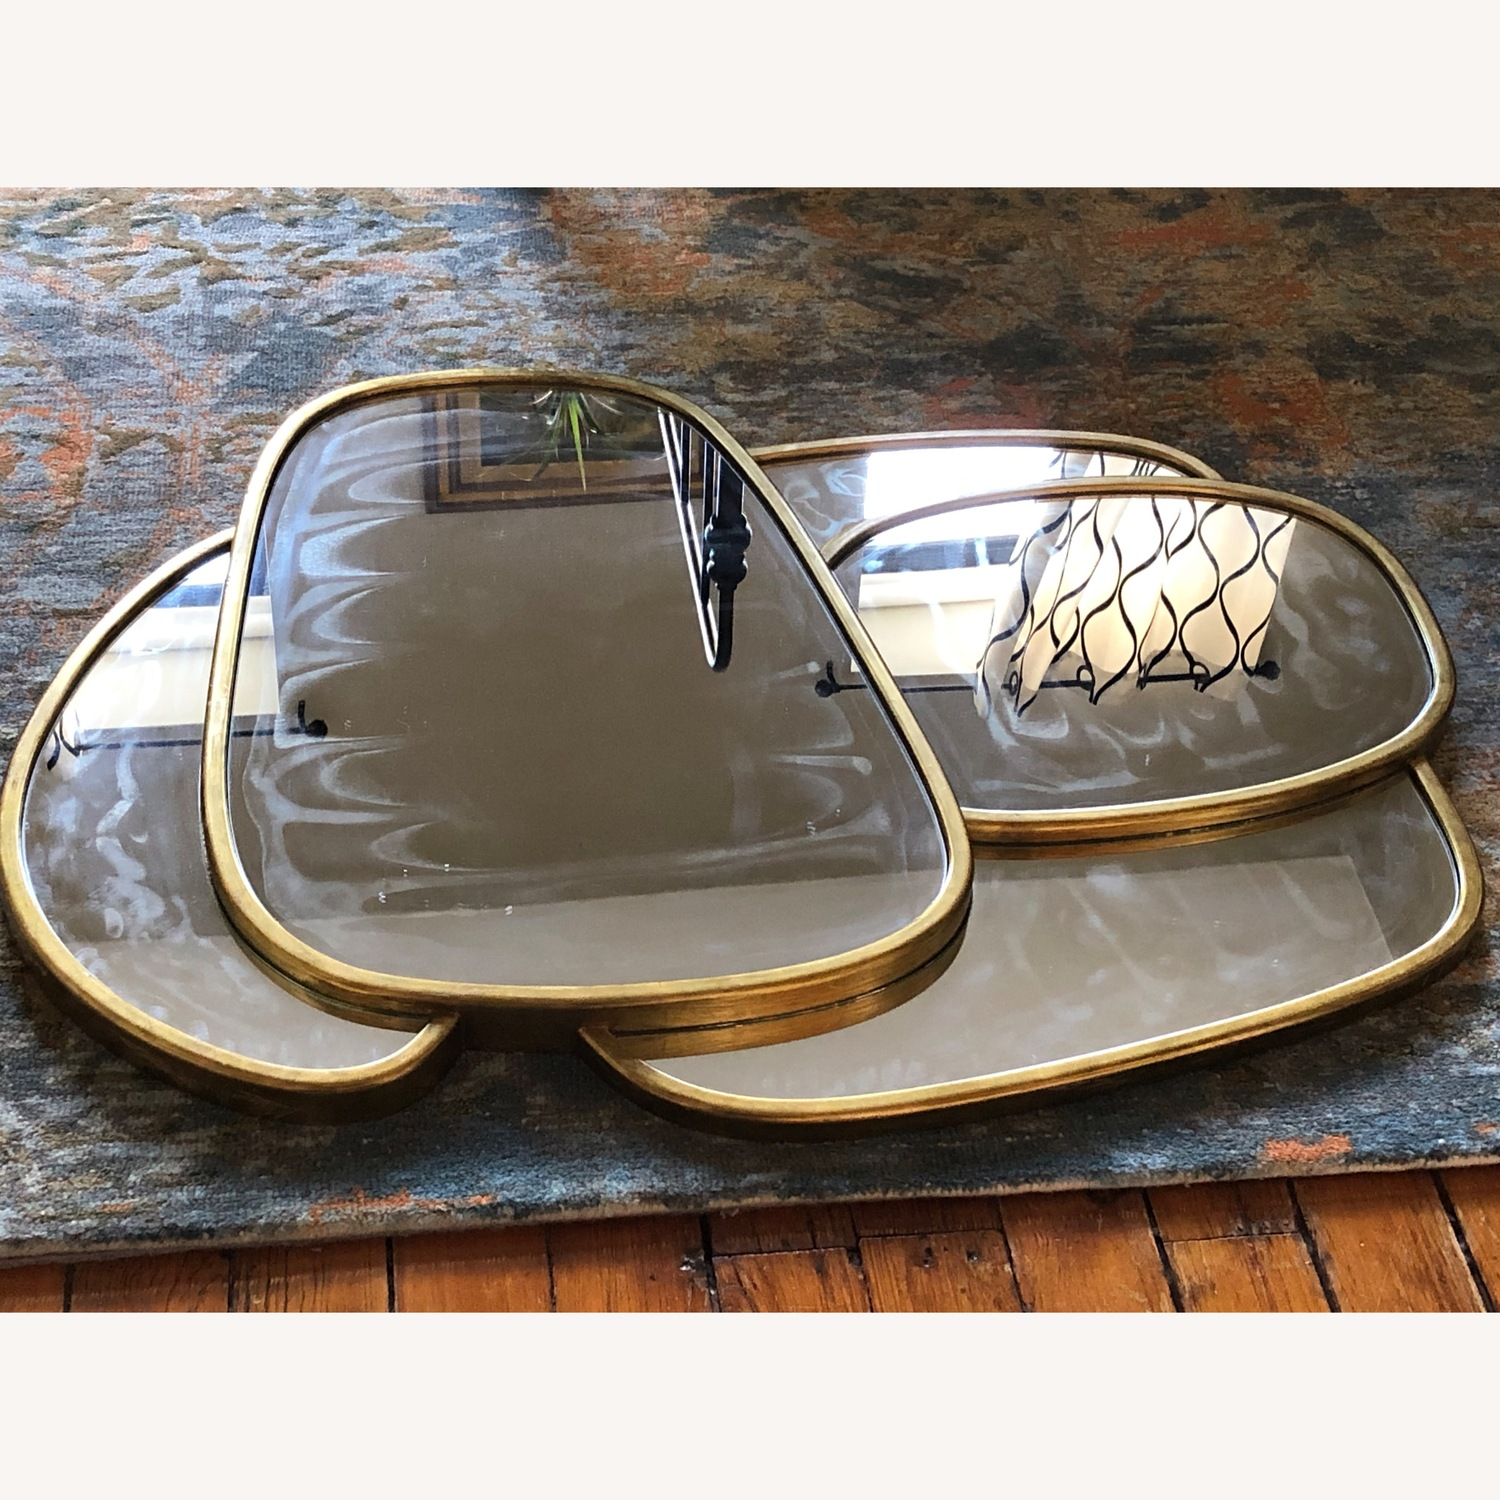 Organic Forms Shapes Gold Leaf Mirror - image-3